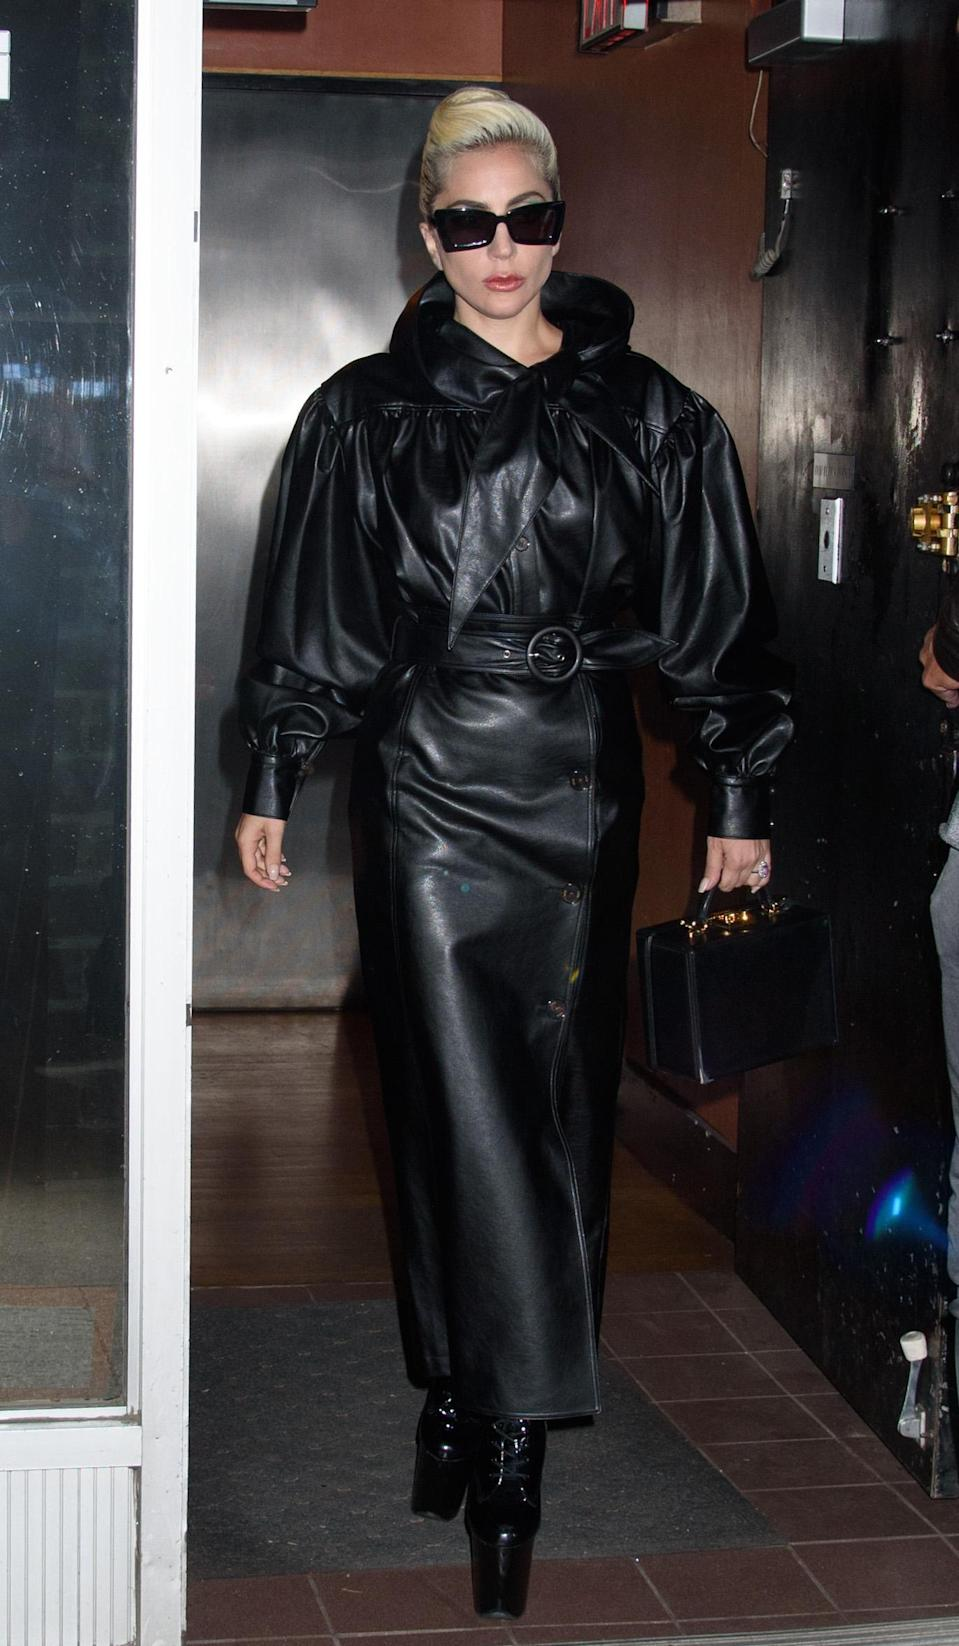 <p>Lady Gaga soon tossed aside office chic to channel the Matrix, and impress us with her ability to cope with the heat in all-leather. [Photo: Rex] </p>